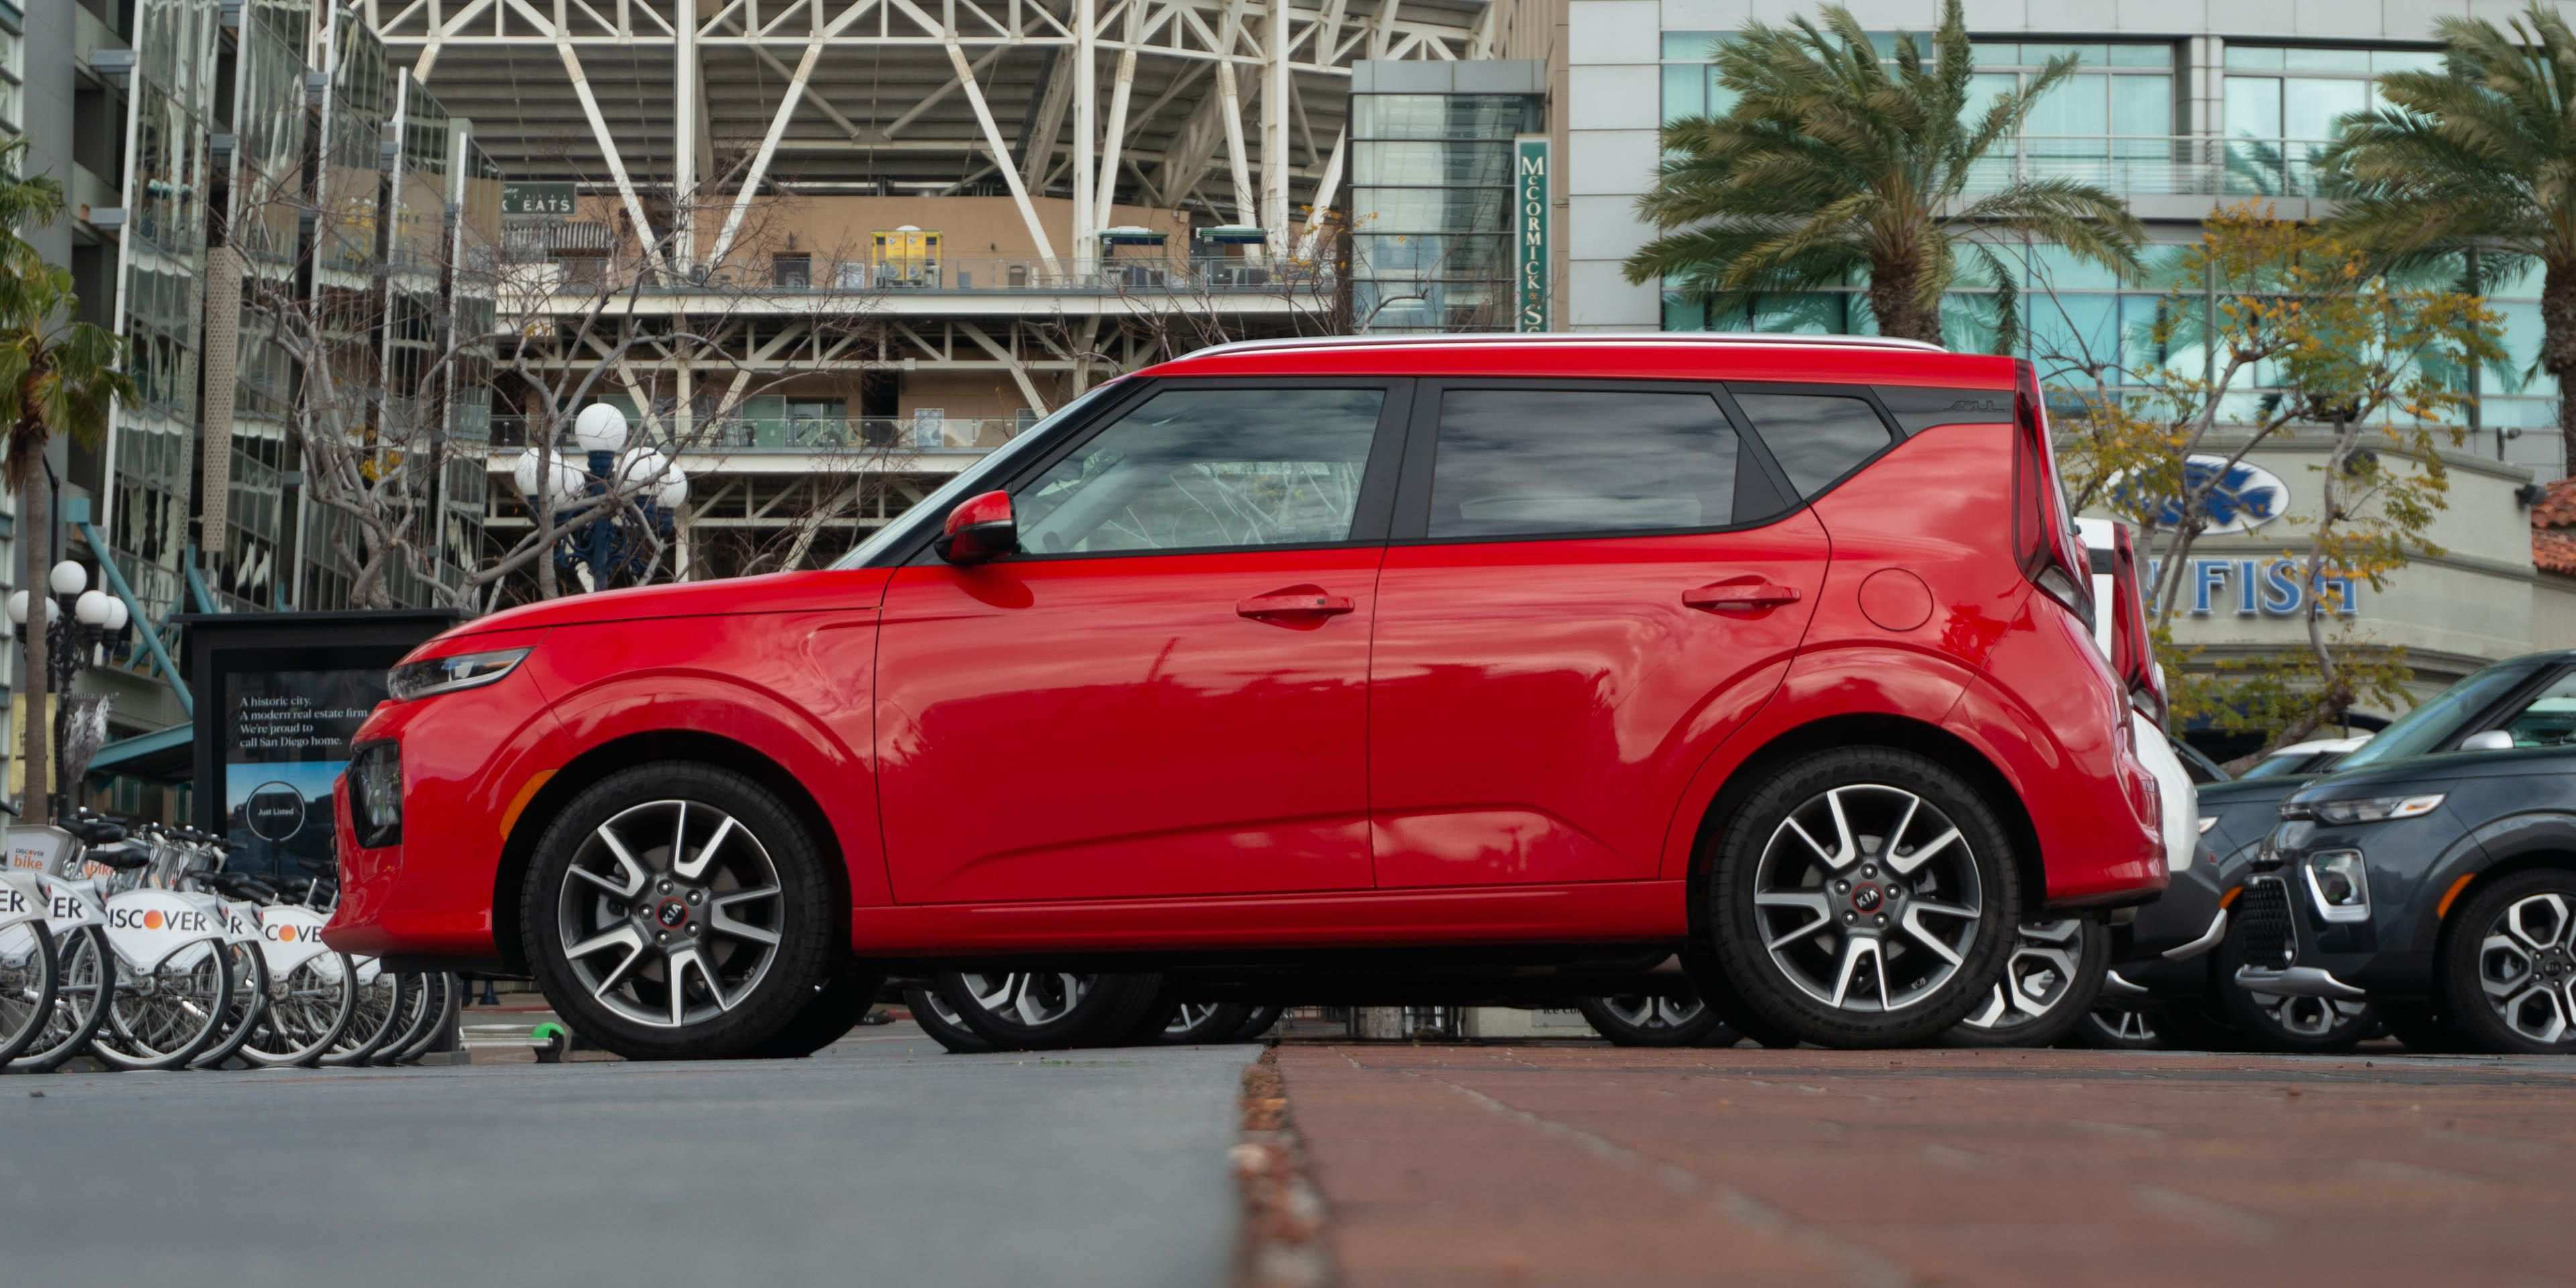 92 Great Best Kia Ev Soul 2019 Price And Review Exterior and Interior for Best Kia Ev Soul 2019 Price And Review